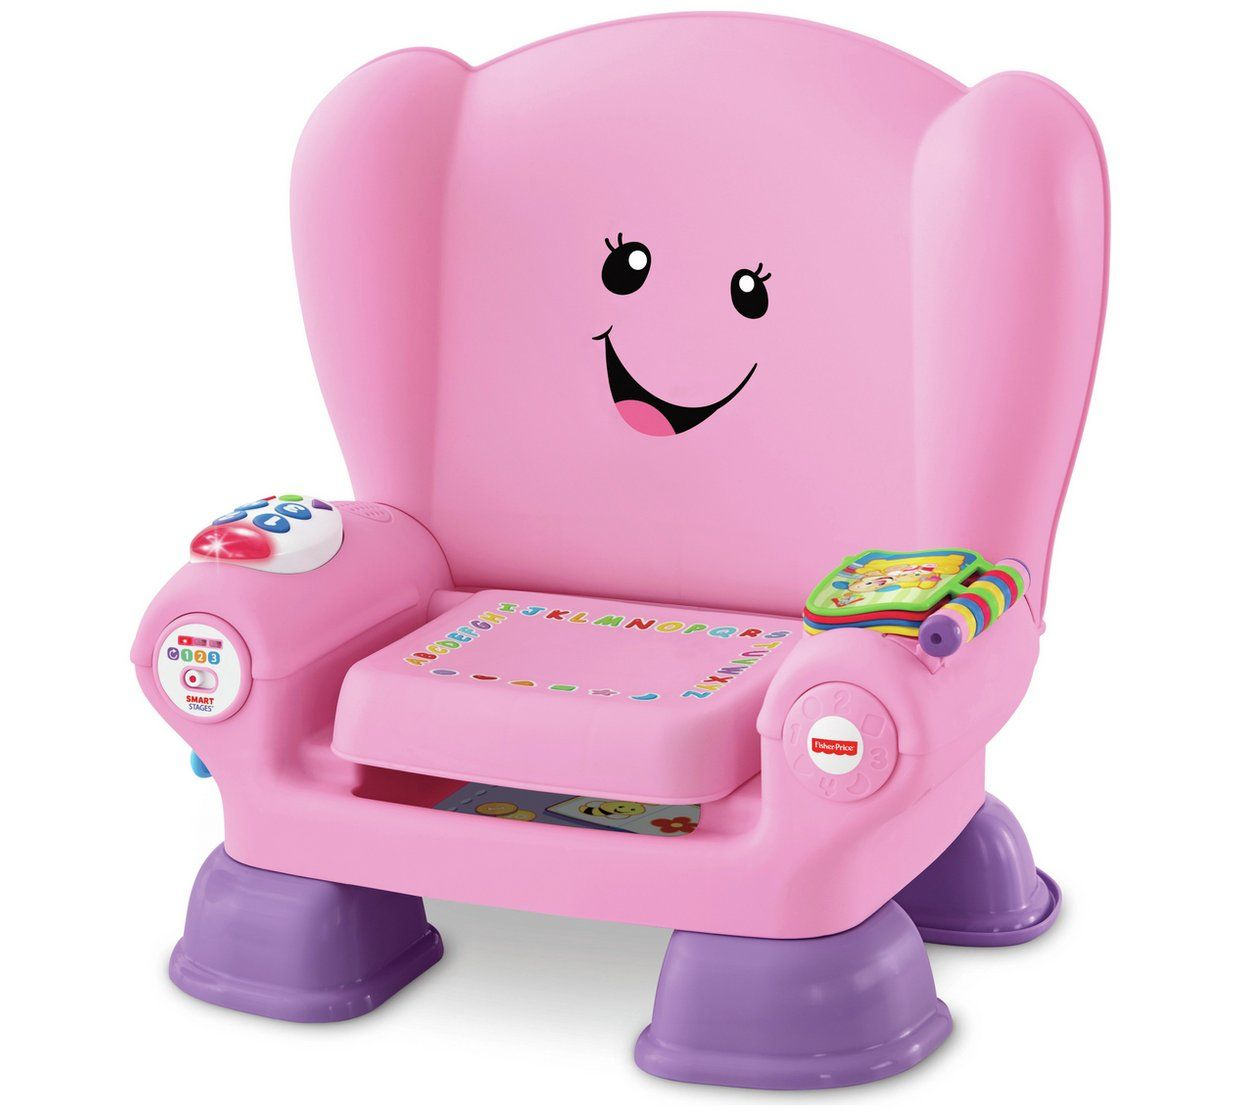 fisher-price laugh & learn smart stages chair pink - qe